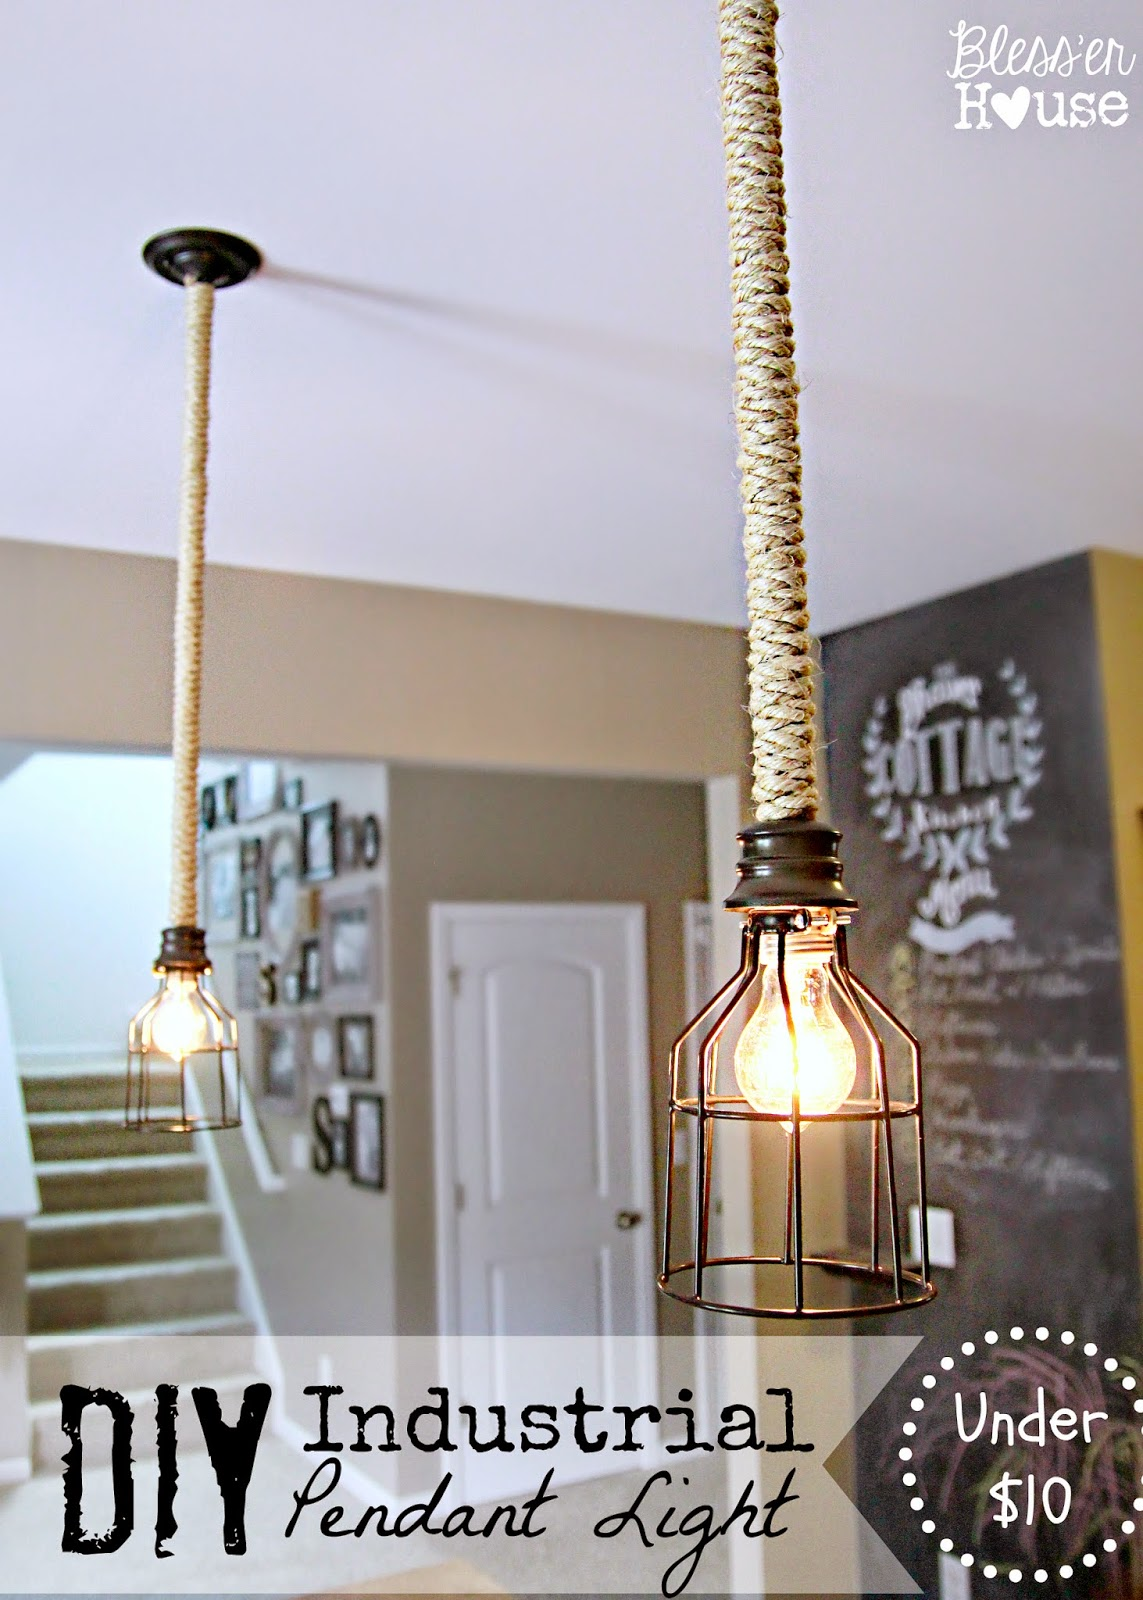 Pendant lighting fixtures kitchen Glass Blesser House Diy Industrial Pendant Light For Under 10 Blesser House